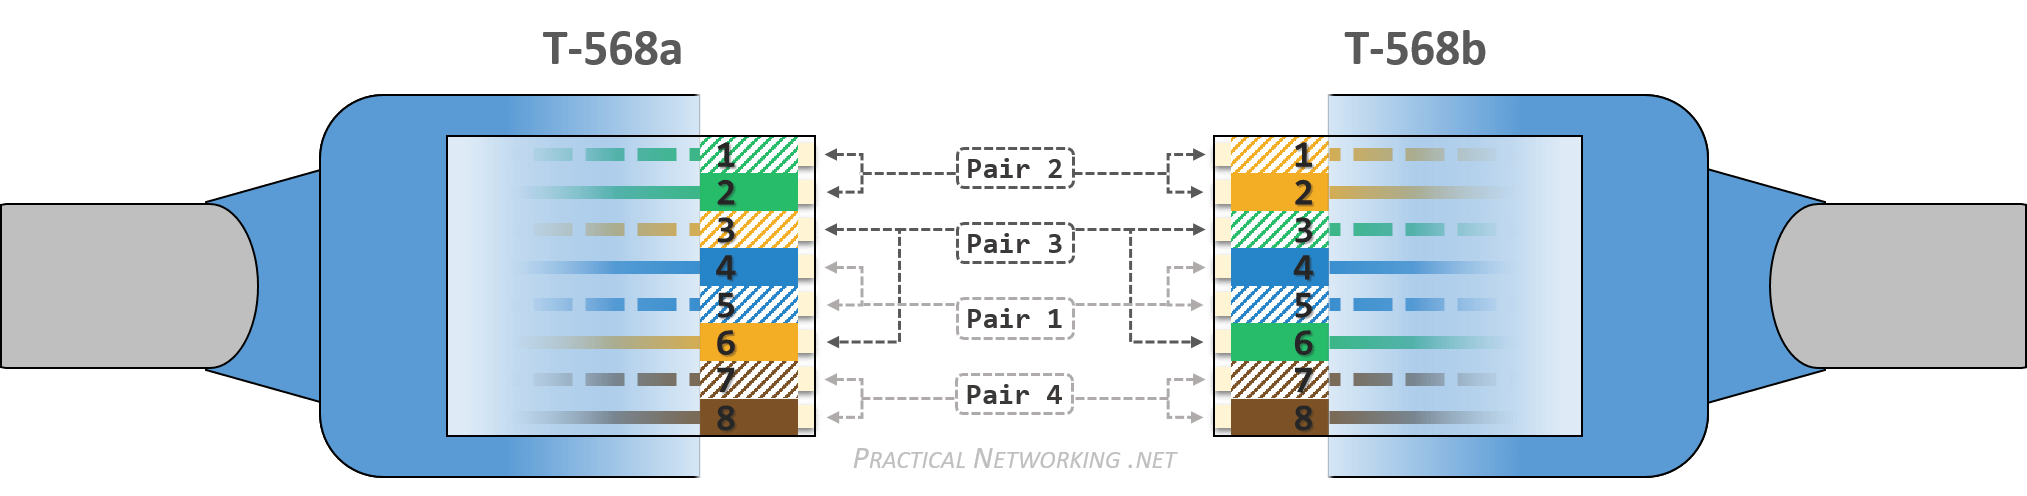 Cat 6 Ethernet Crossover Cable Wiring Diagram Cat6